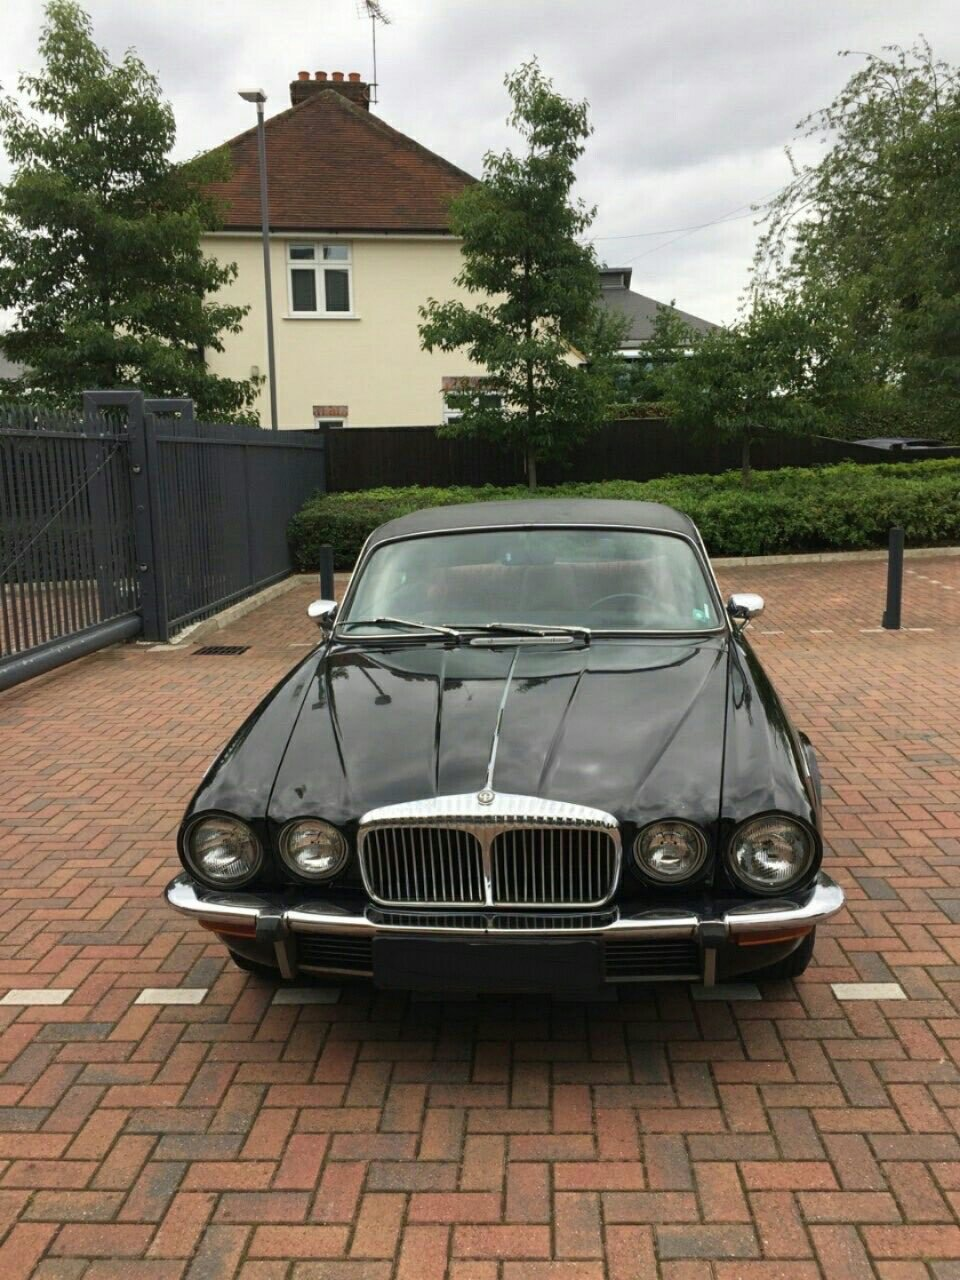 1975 Jag/Daimler Coupe Great Project  For Sale (picture 2 of 6)